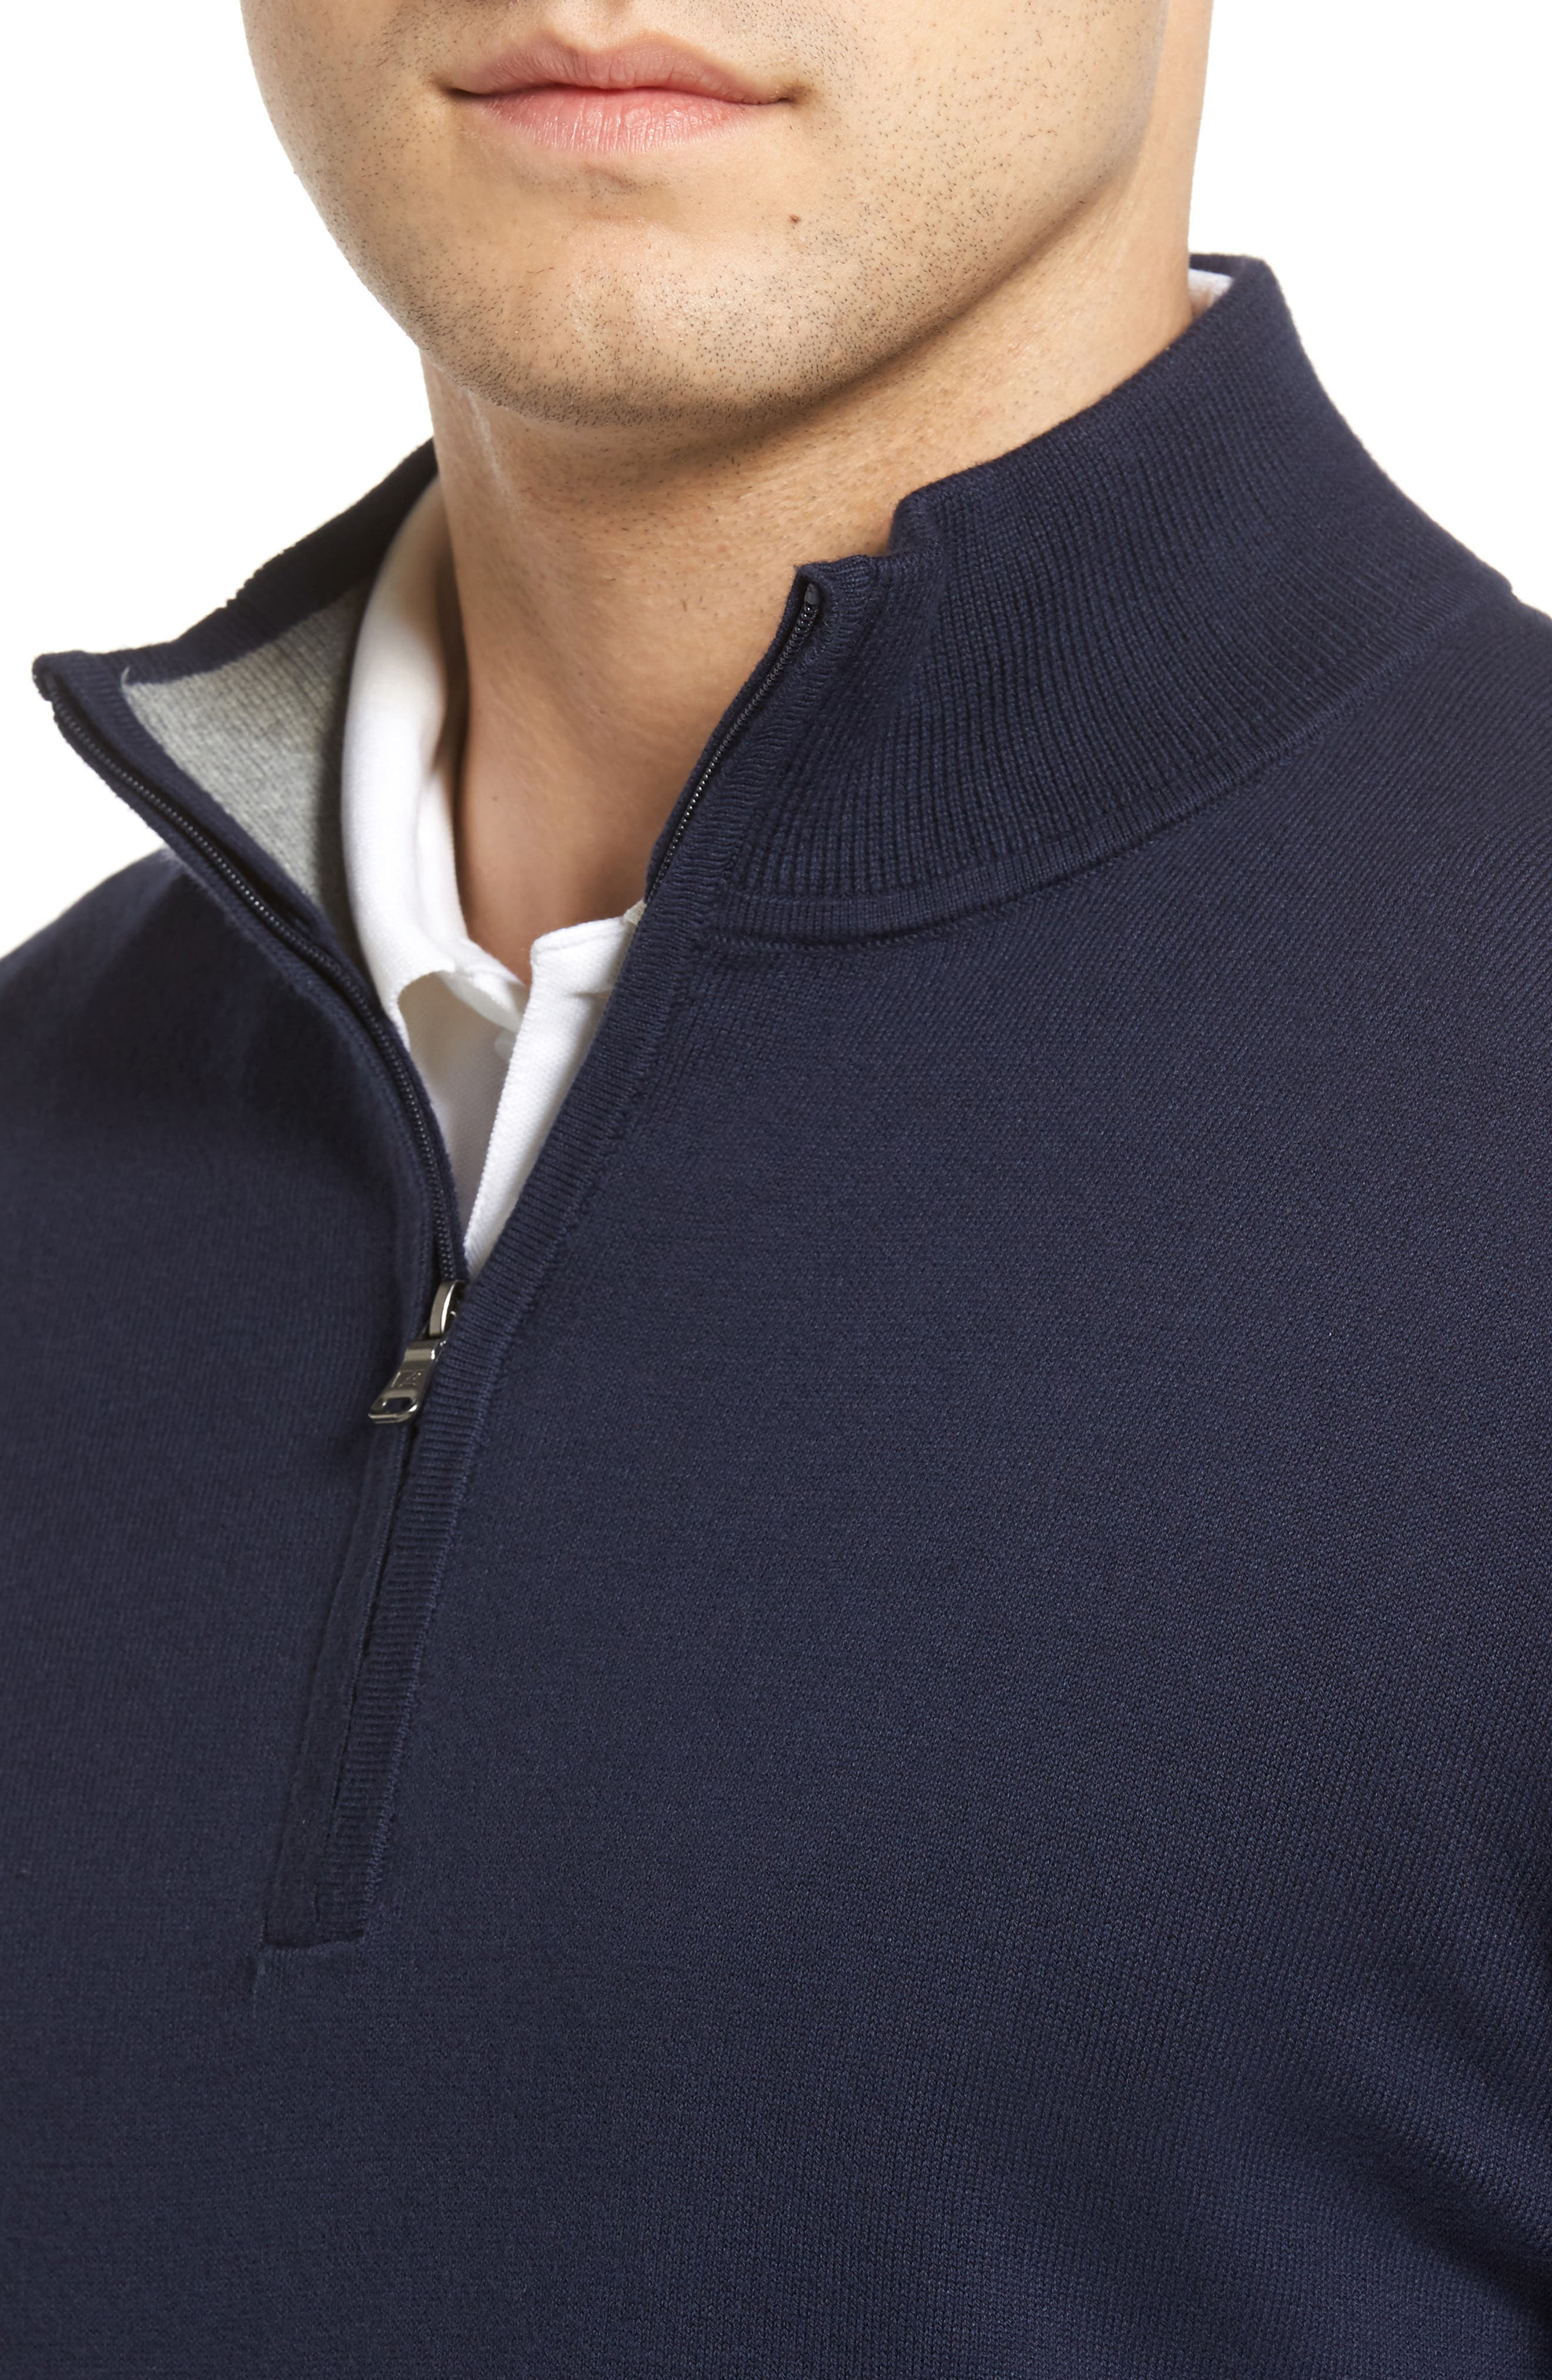 Lakemont Half Zip Sweater,                             Alternate thumbnail 4, color,                             Liberty Navy